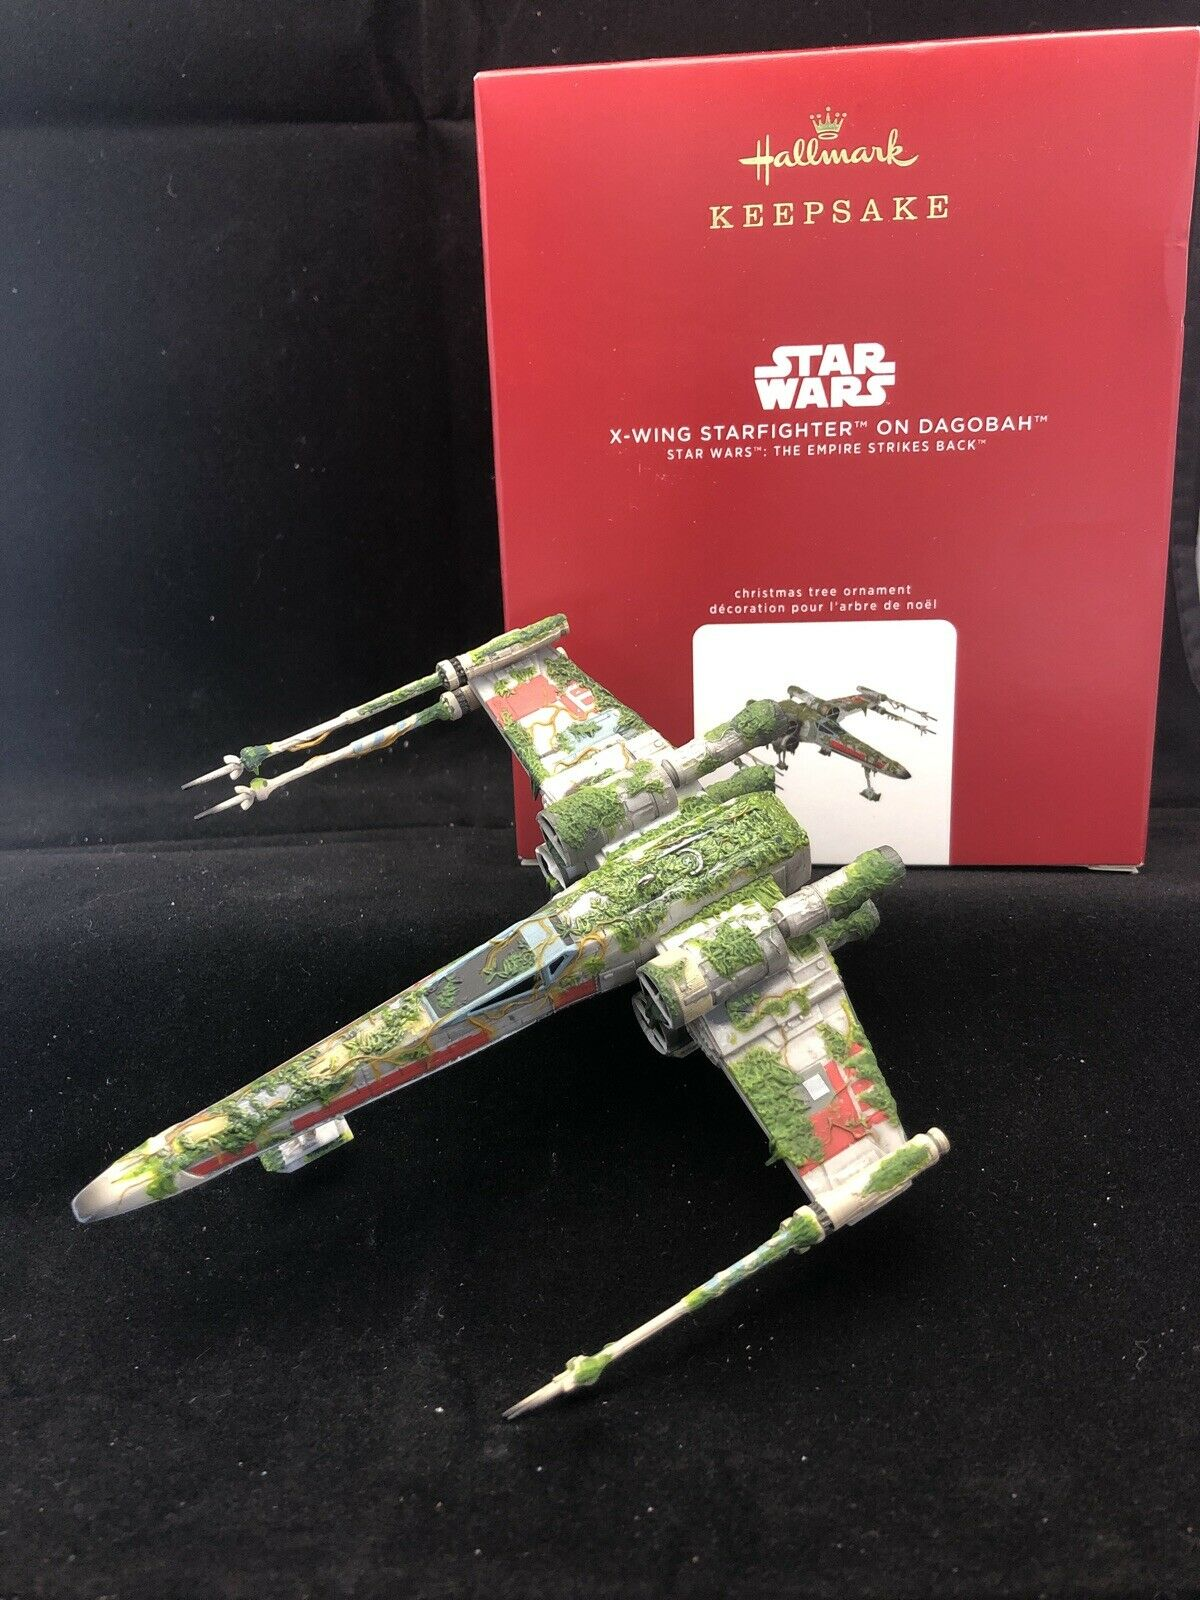 NIB 2020 Hallmark Star Wars X-Wing Starfighter On Dagobah//Xmas Ornament//$32.99